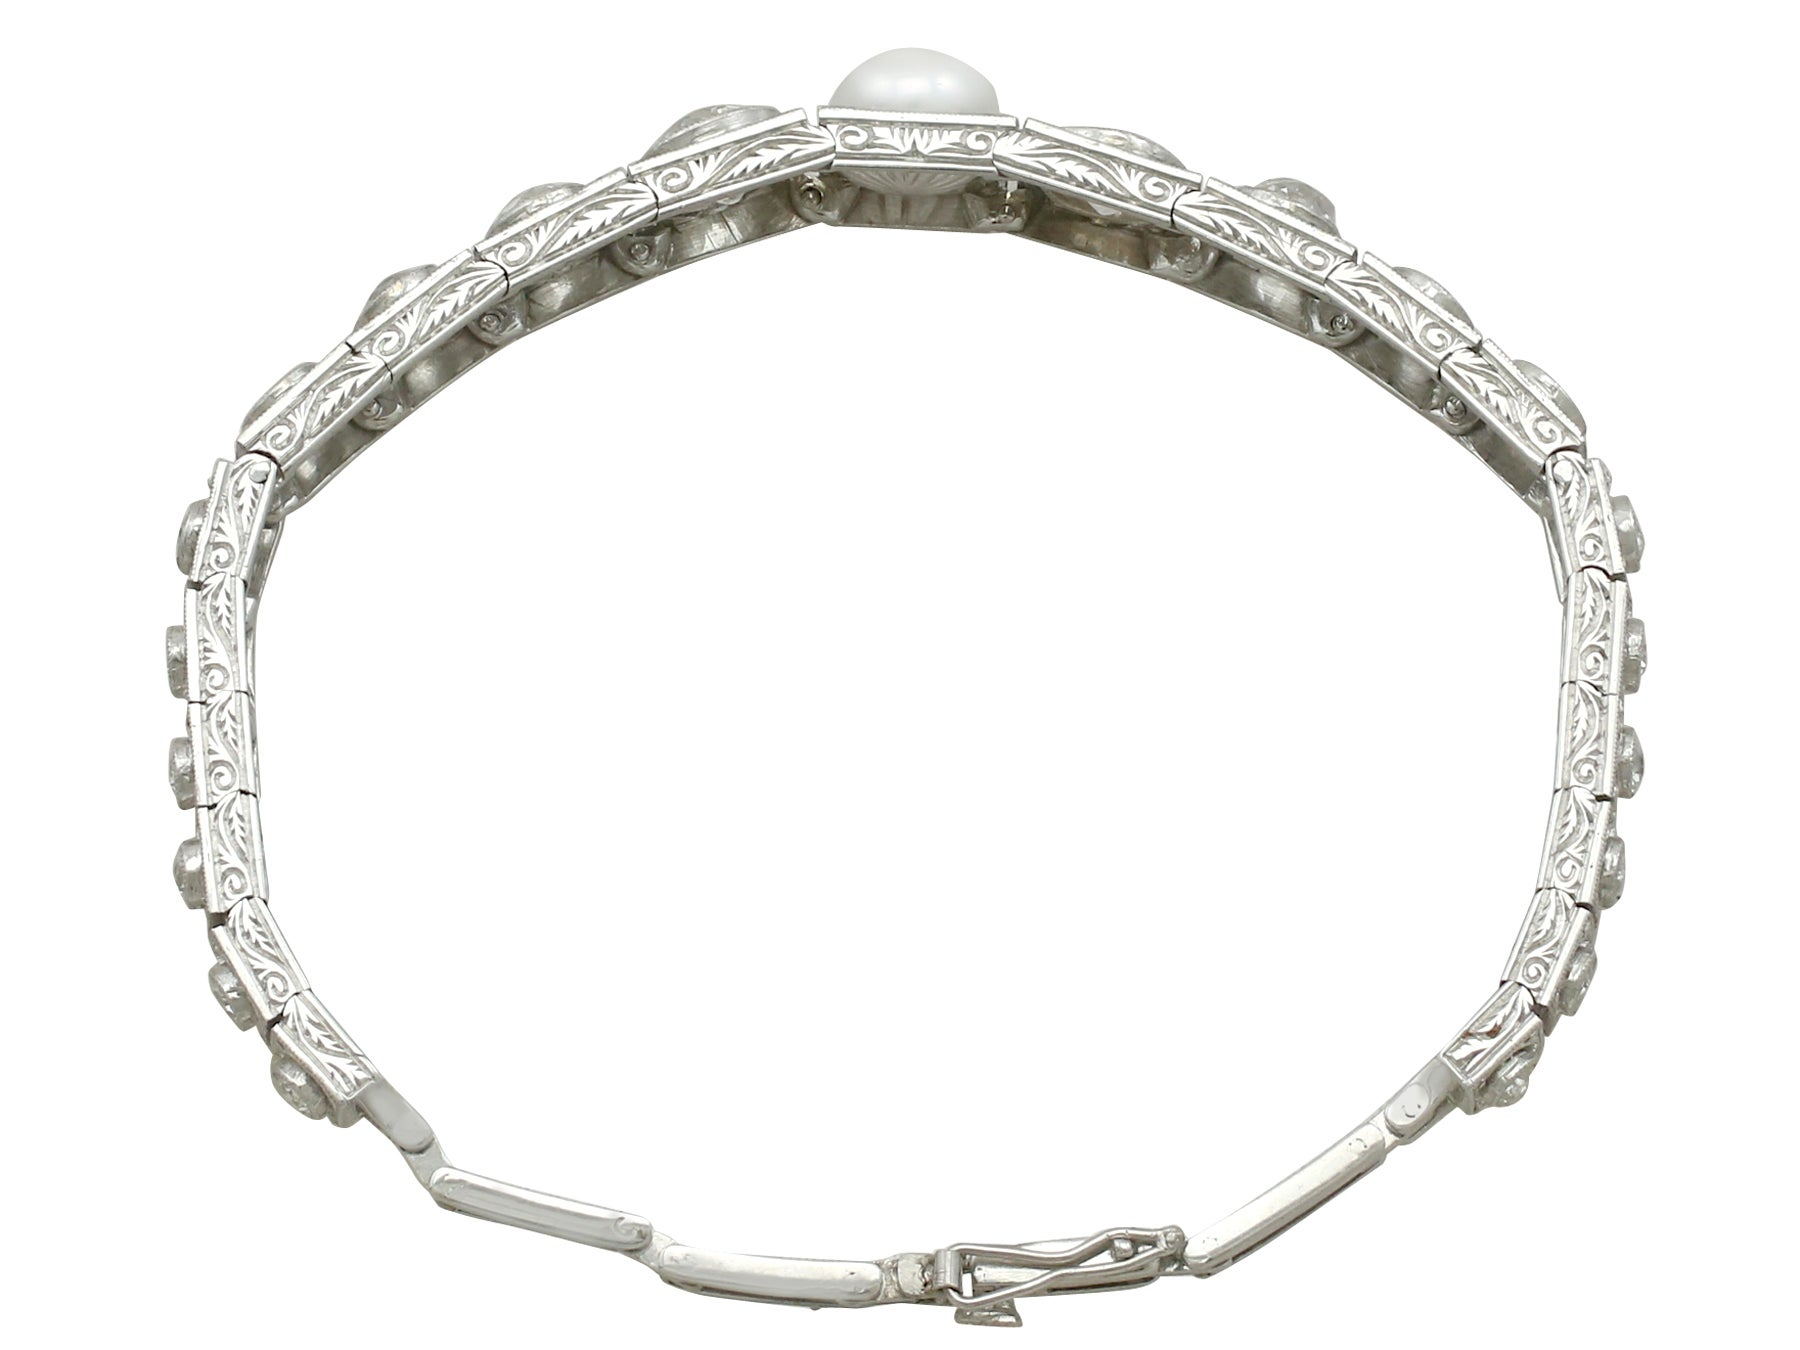 anita diamond wg atlas ko marquis bracelet products pearl